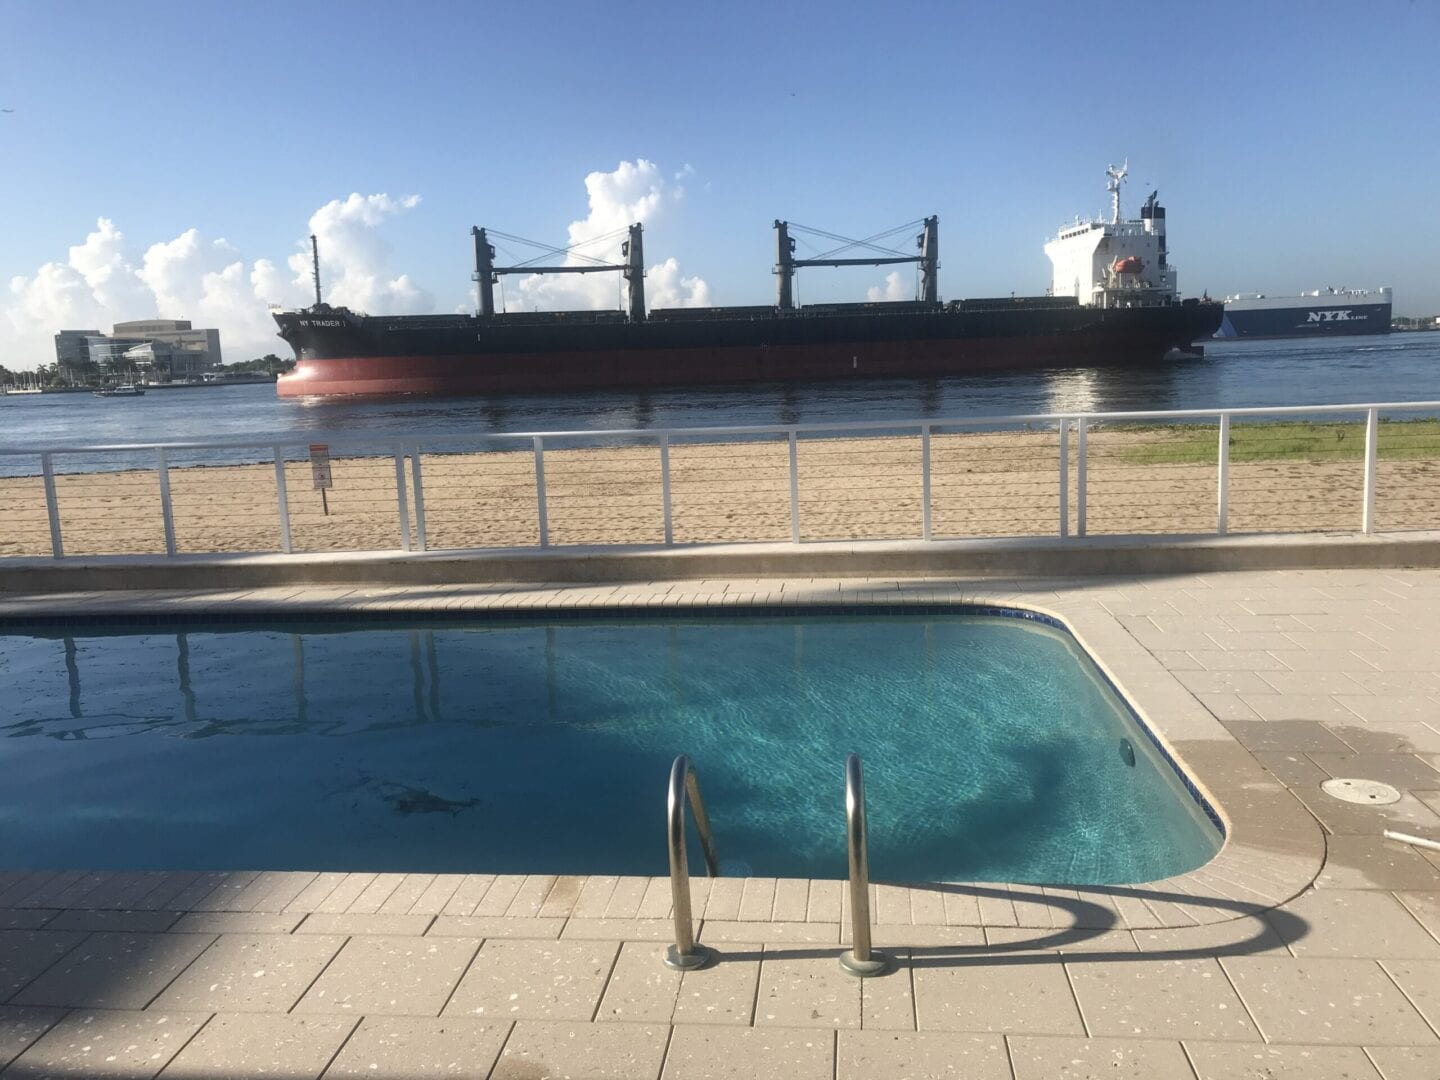 Rounded rectangle pool near the ocean and a big ship nearby (different angle)